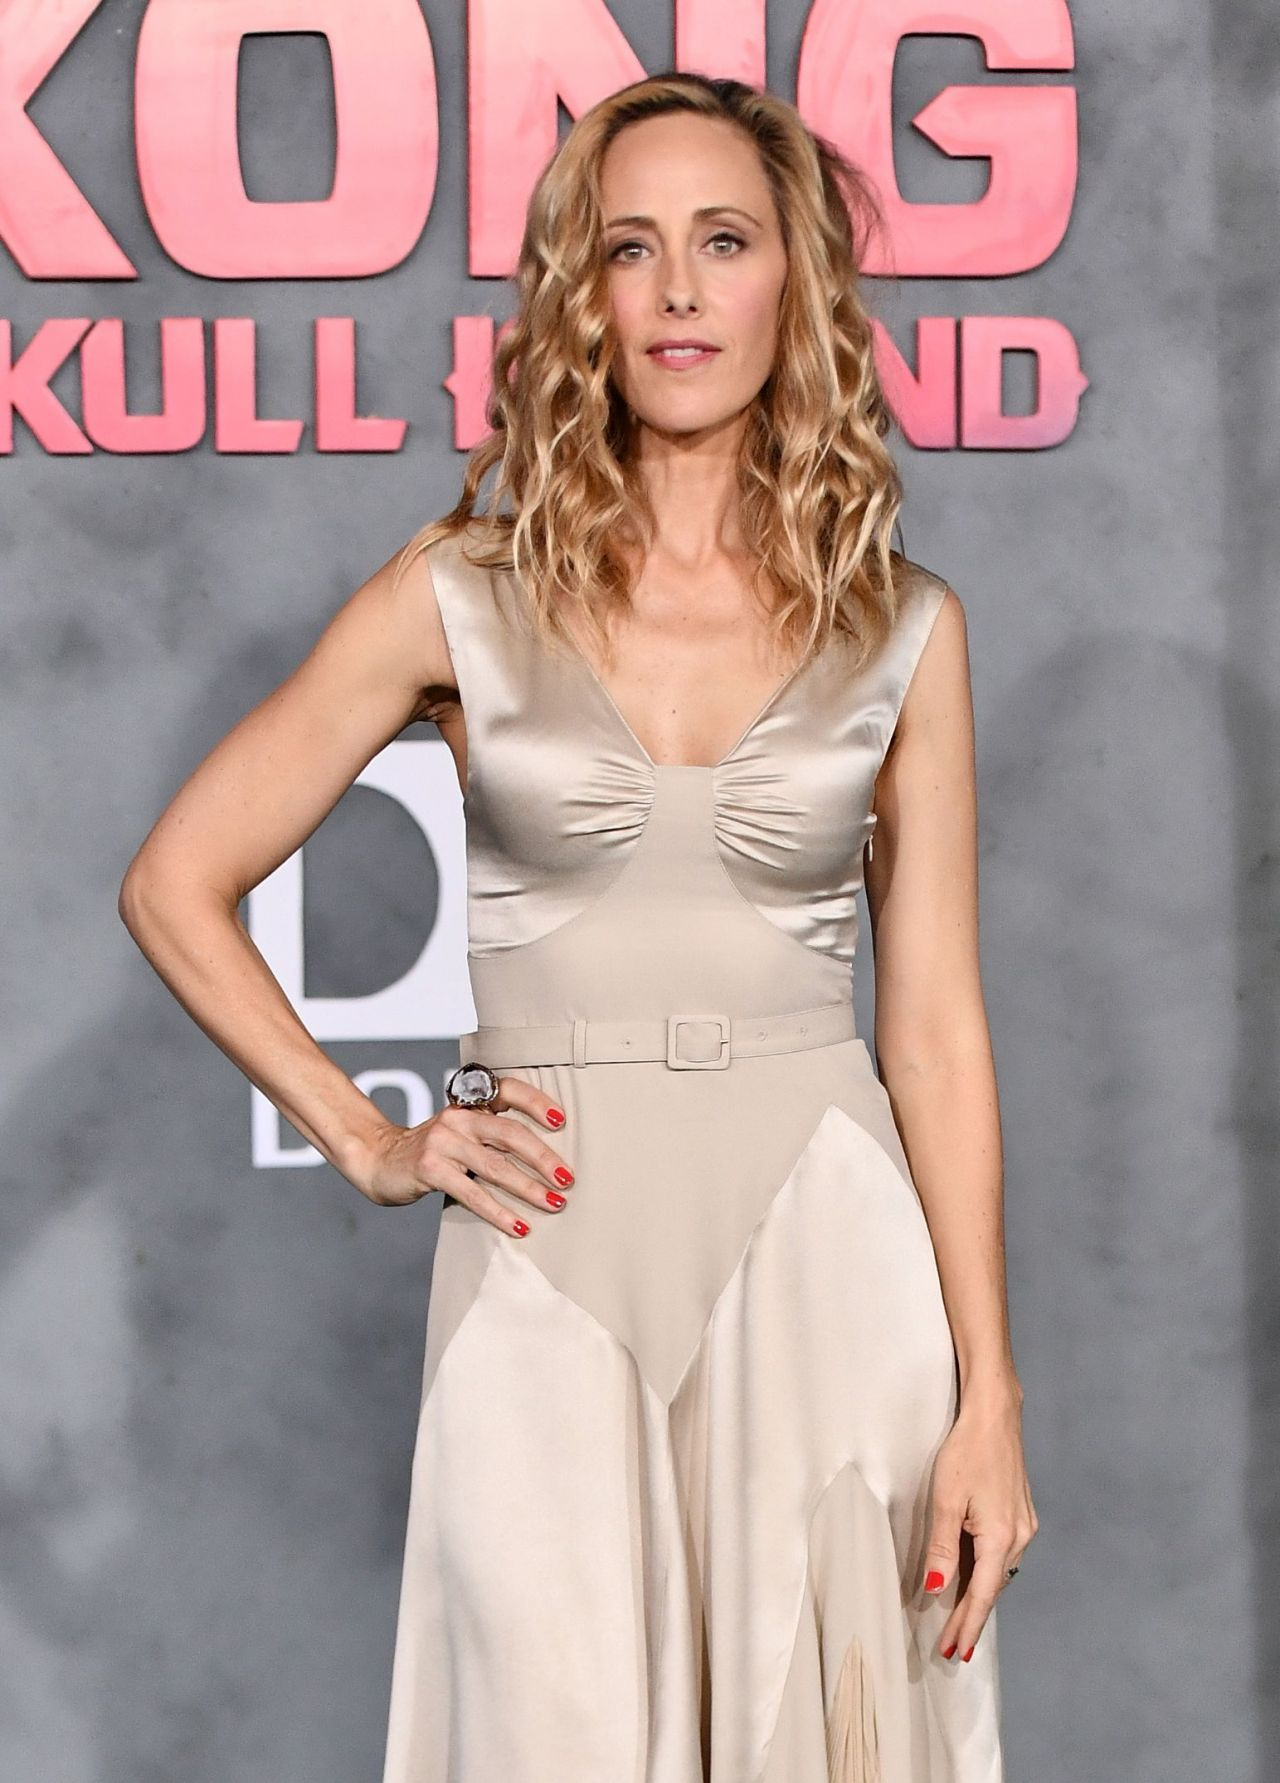 Kim Raver Kong Skull Island Premiere In Hollywood 3 8